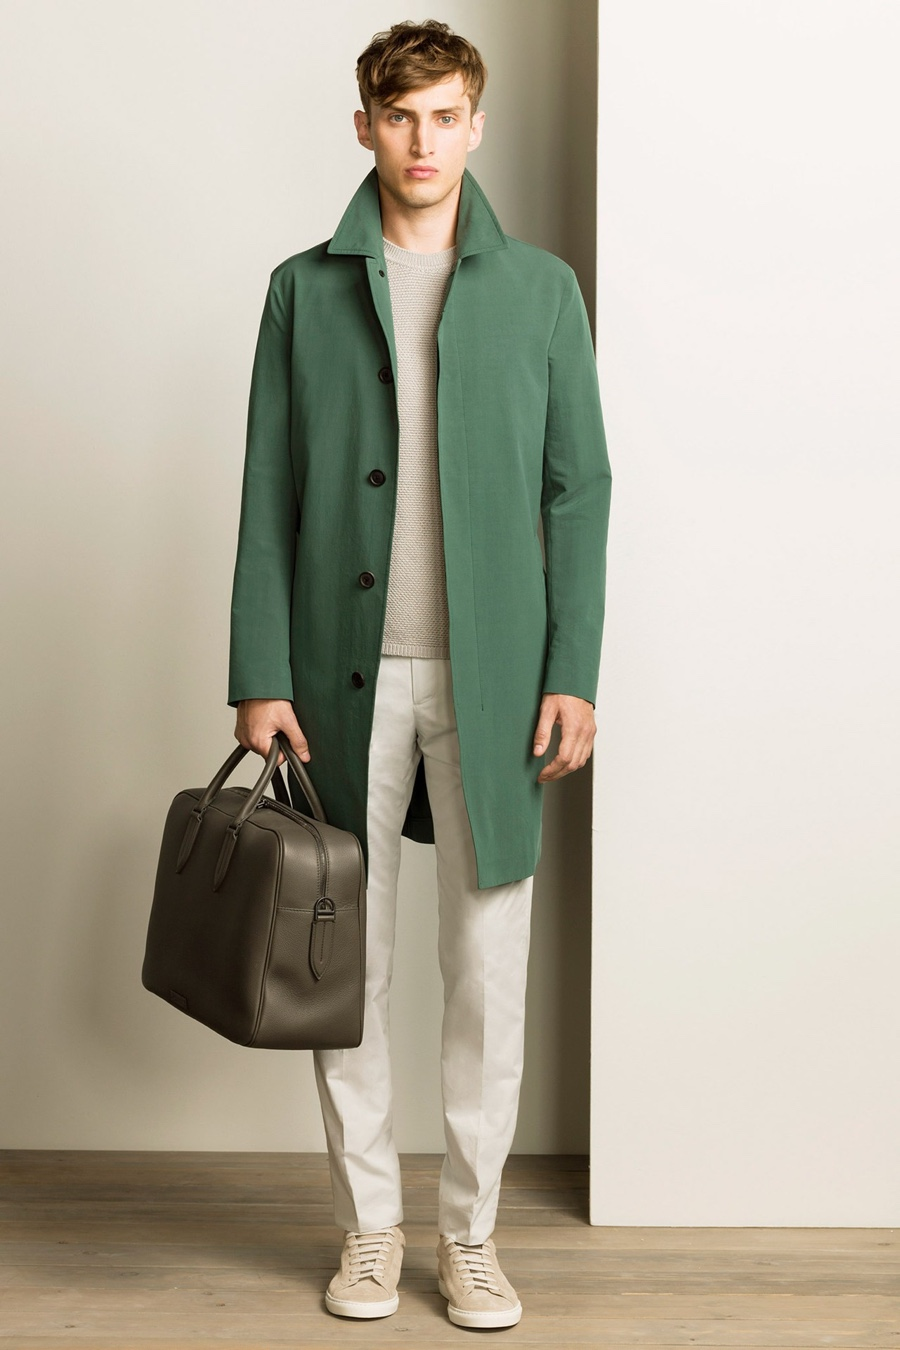 Gieves & Hawkes Spring/Summer 2016 | London Collections: Men